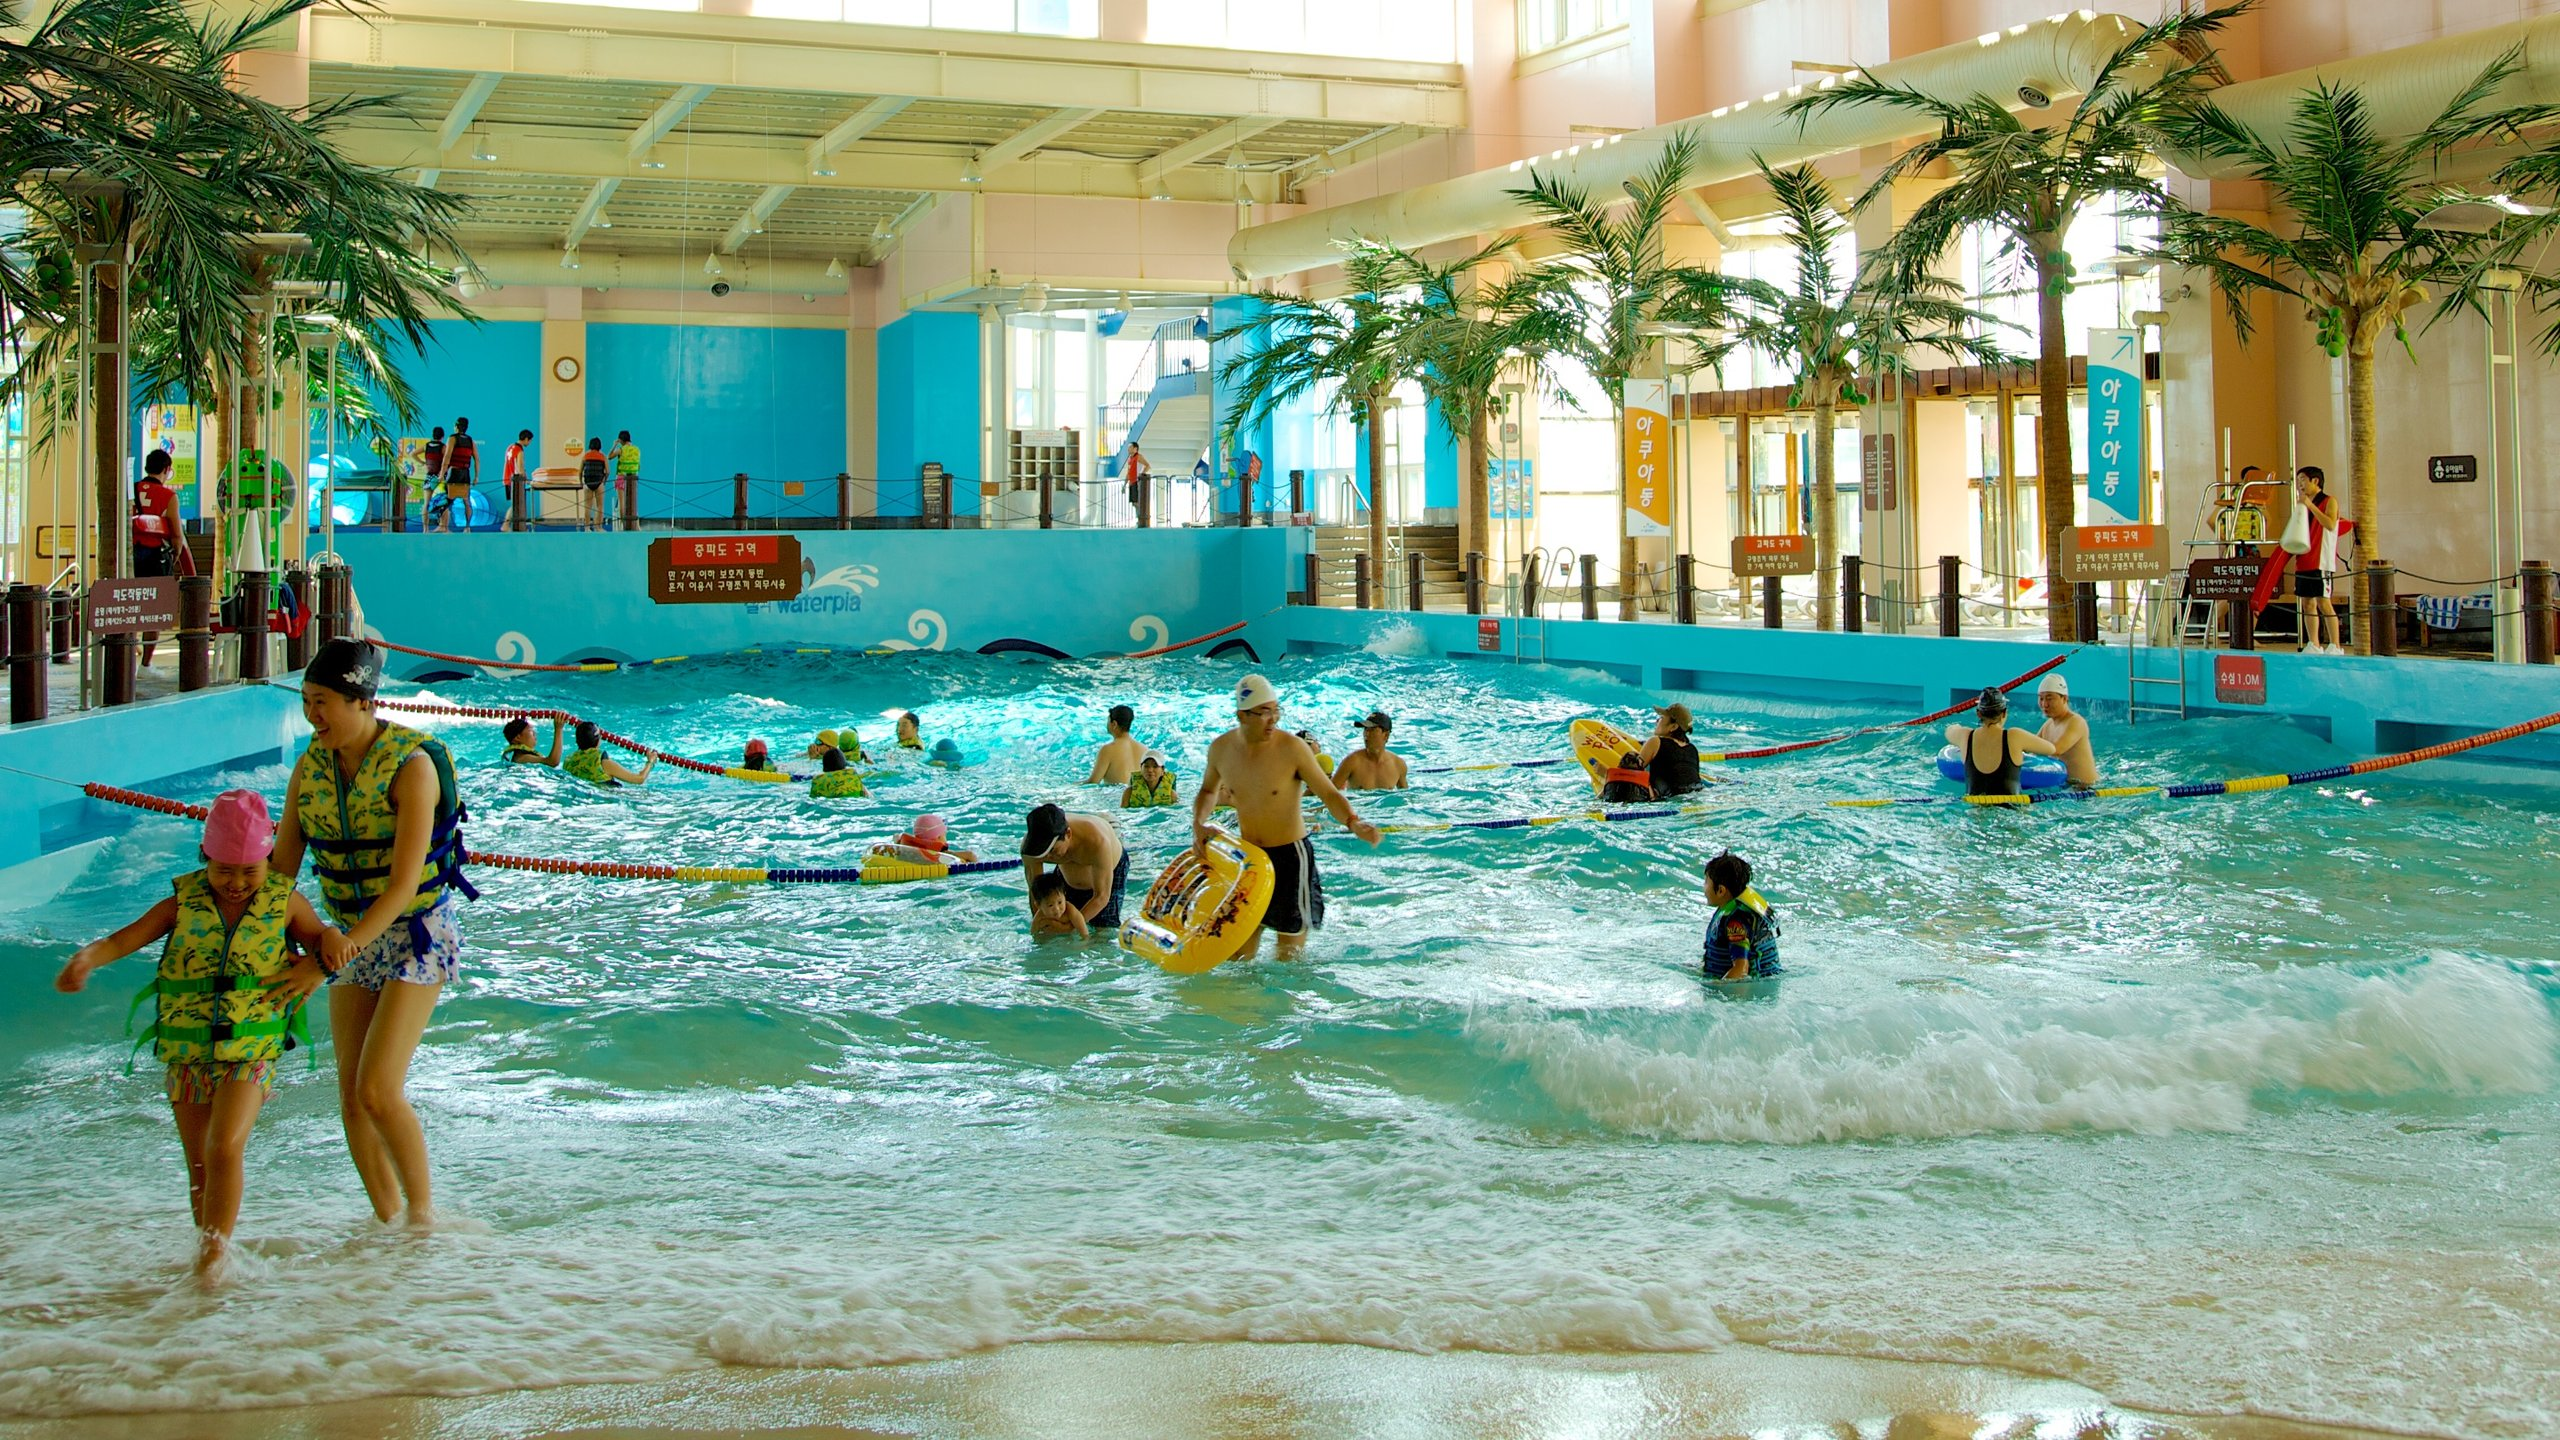 Make a splash in the hot-spring swimming pools and hot tubs, enjoy the picturesque mountain views and ride into The Maelstrom.